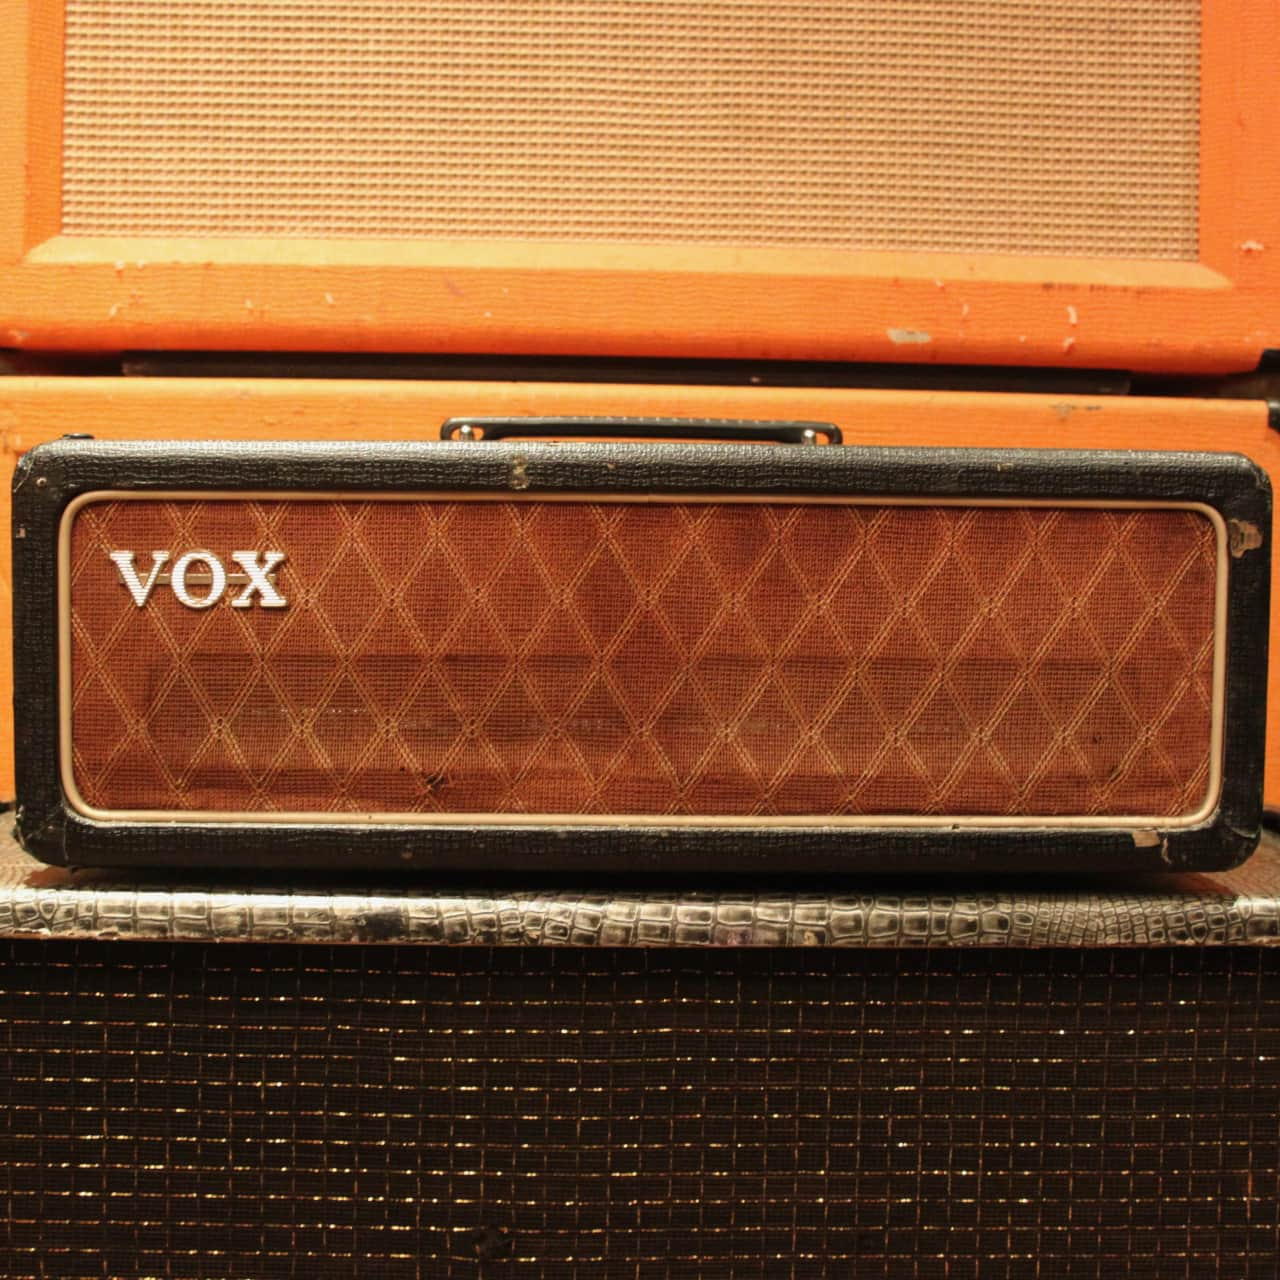 Vox ac 50 dating